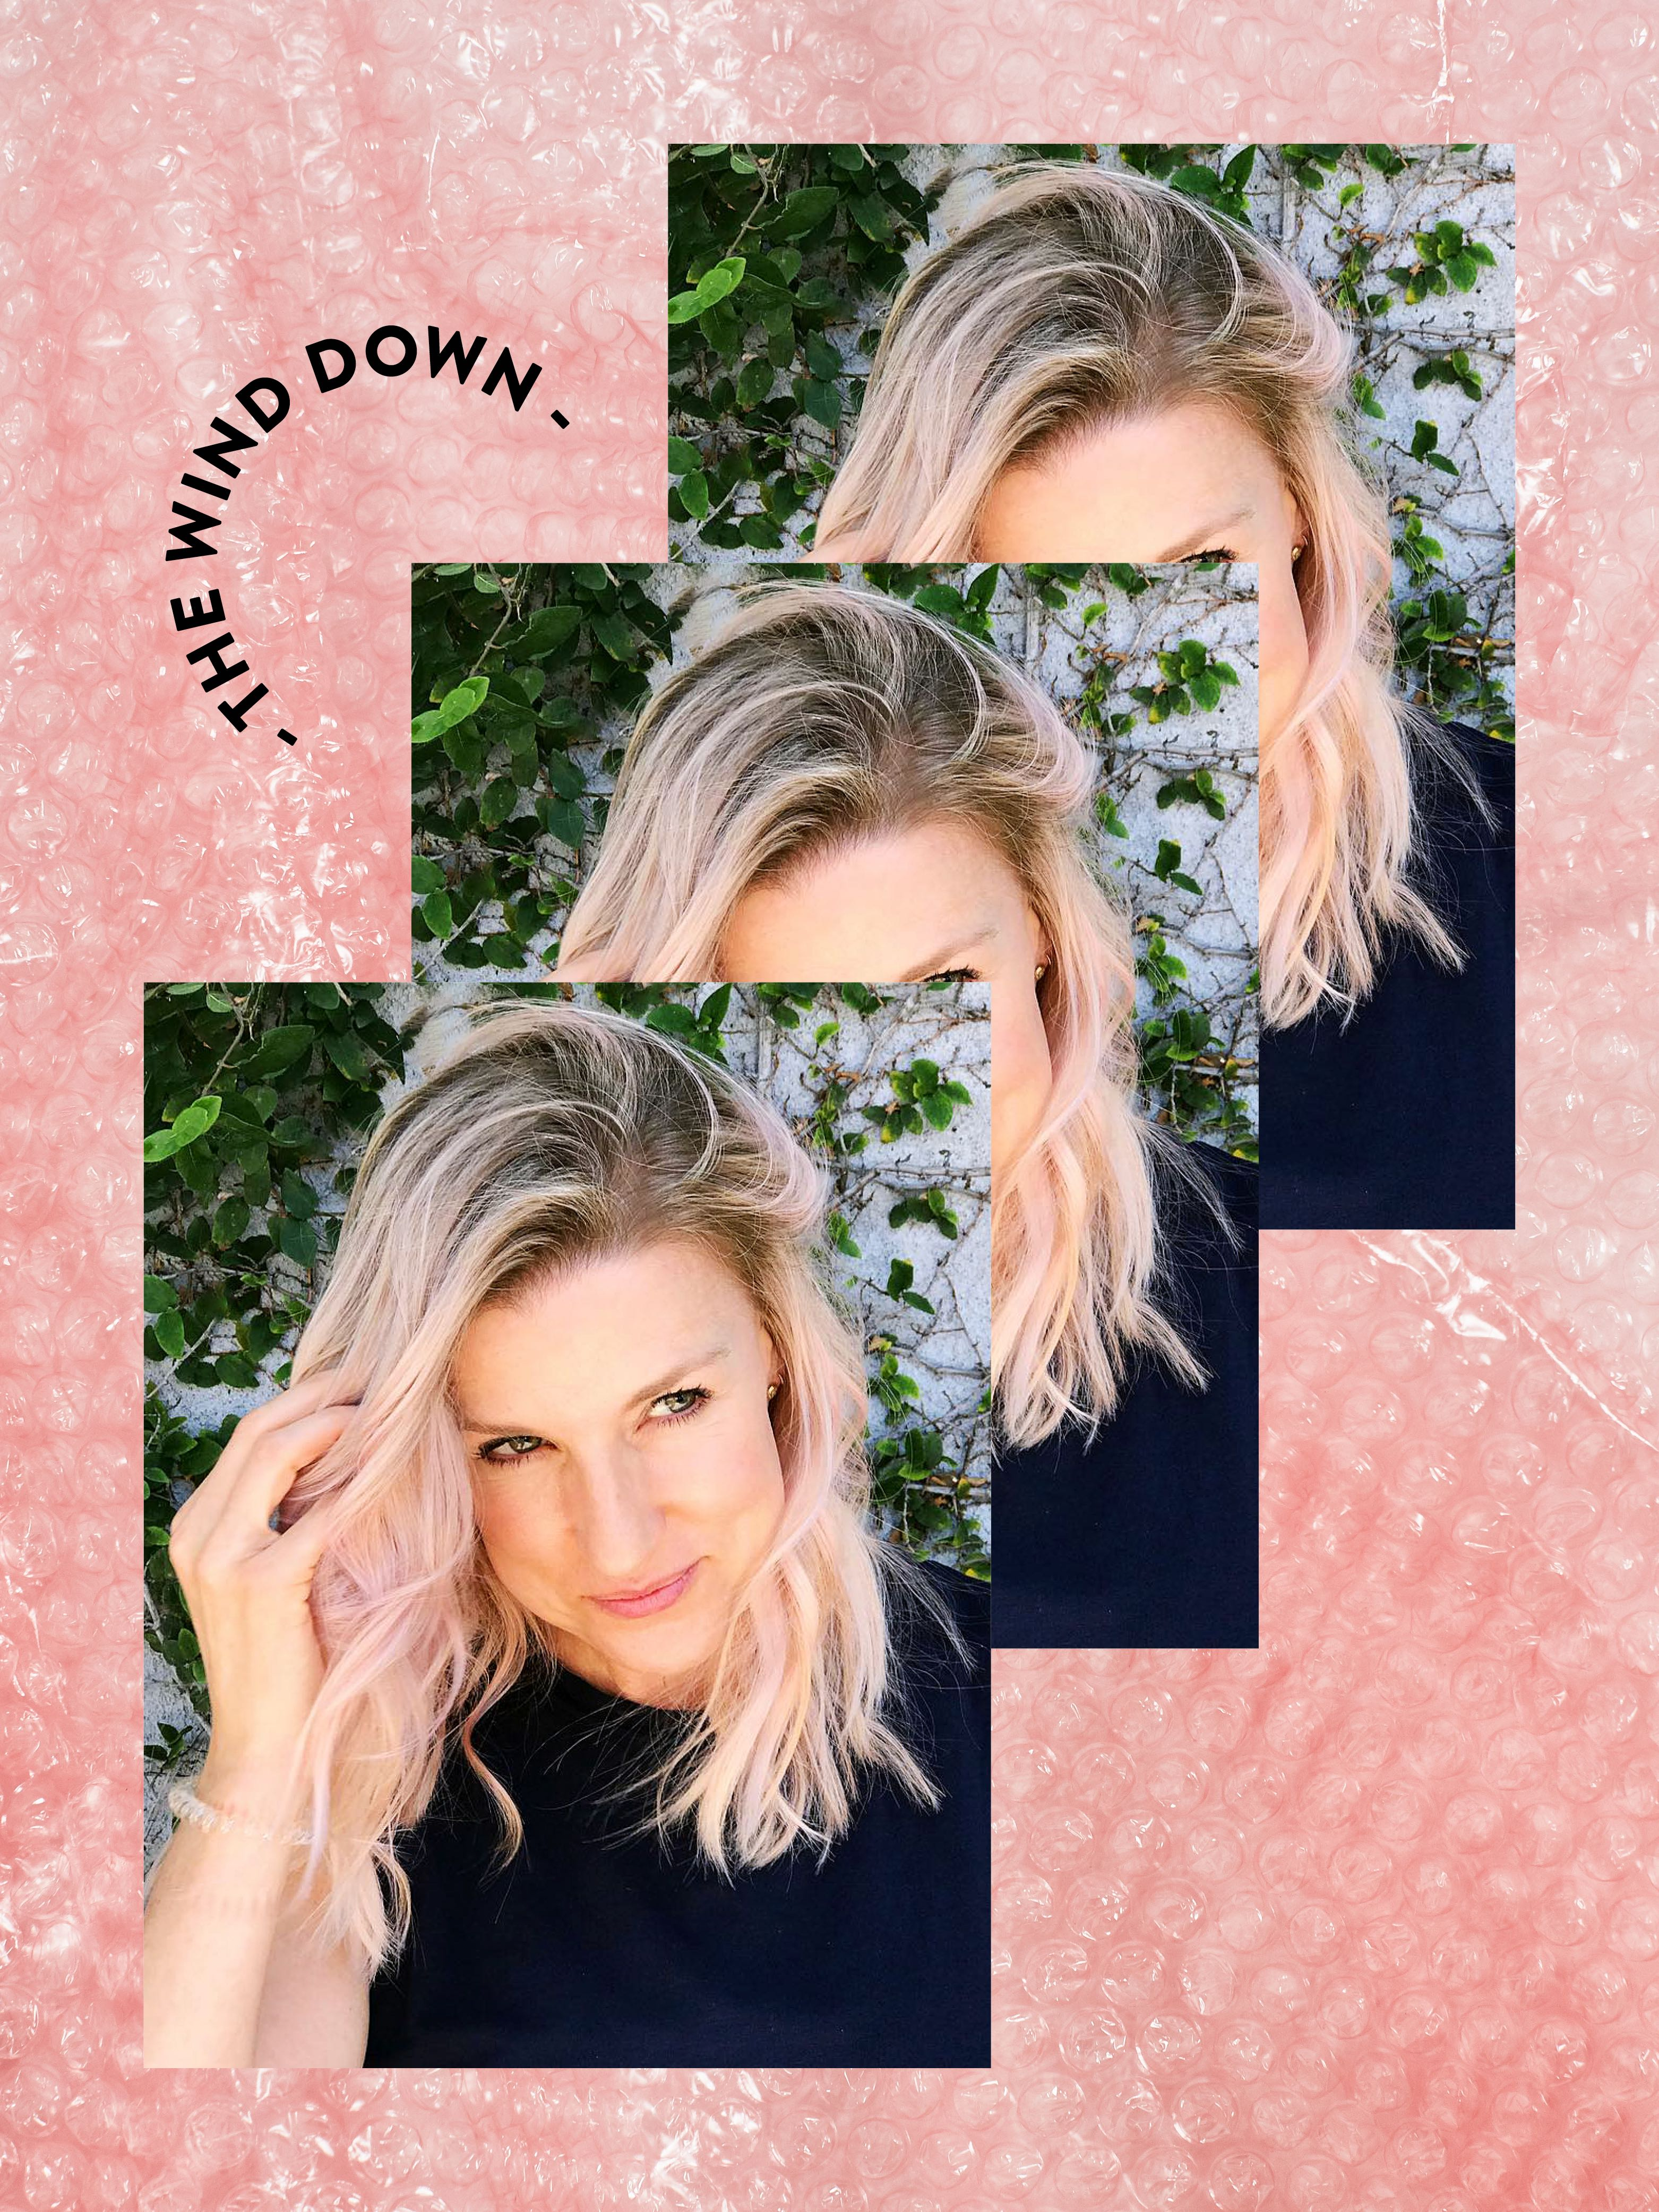 The-wind-down-renee-rouleau-domino